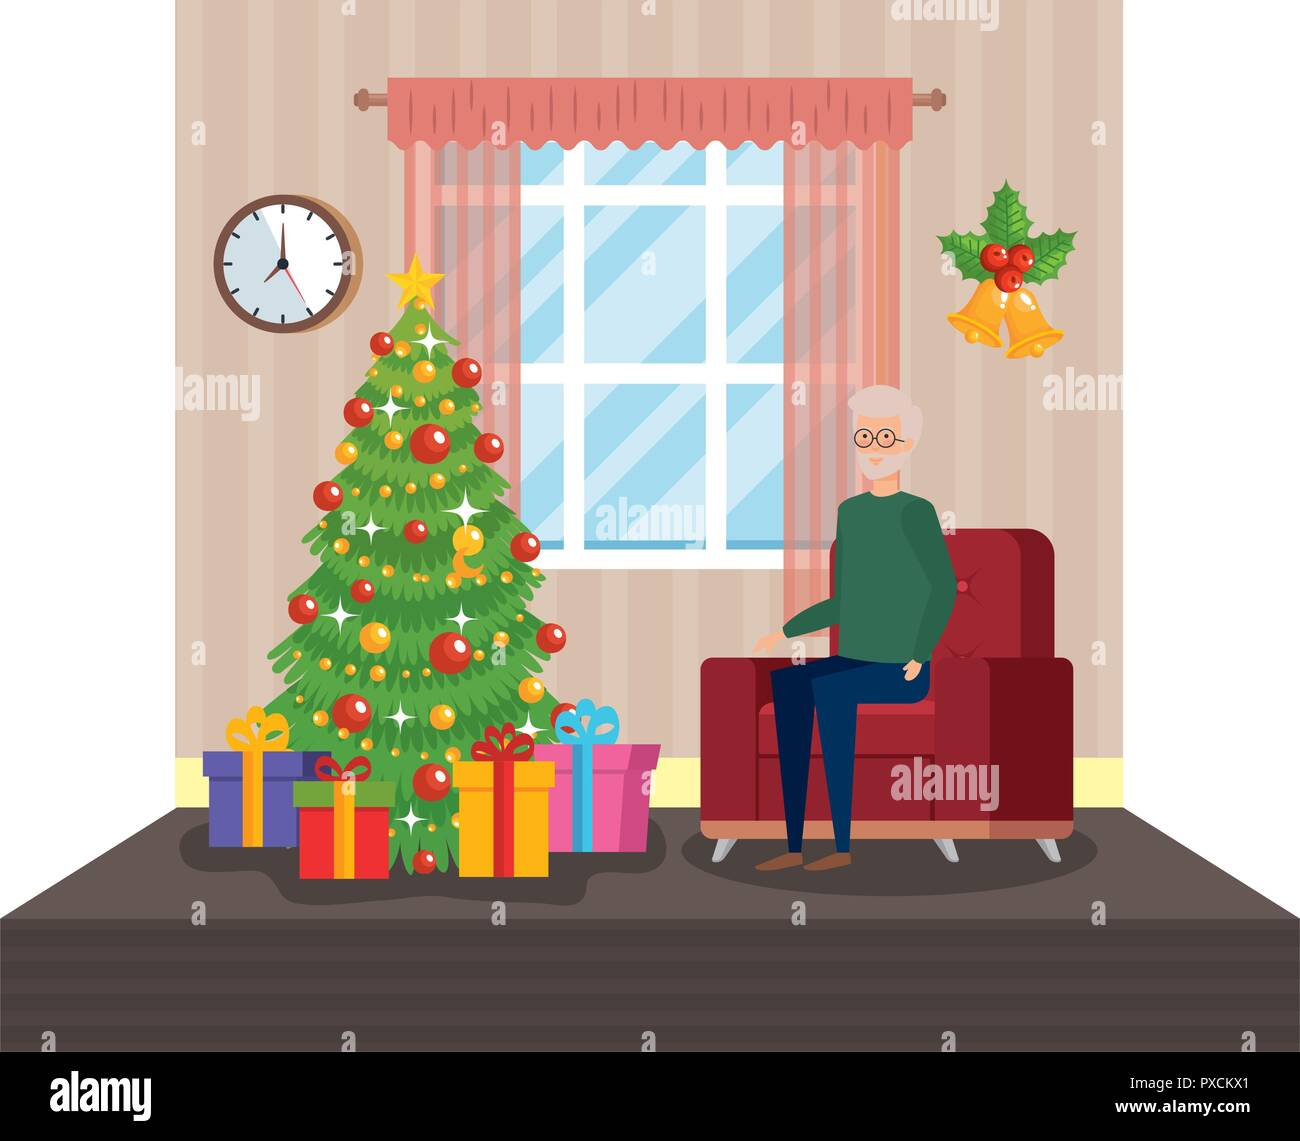 grandfather in livingroom with christmas decoration - Stock Image